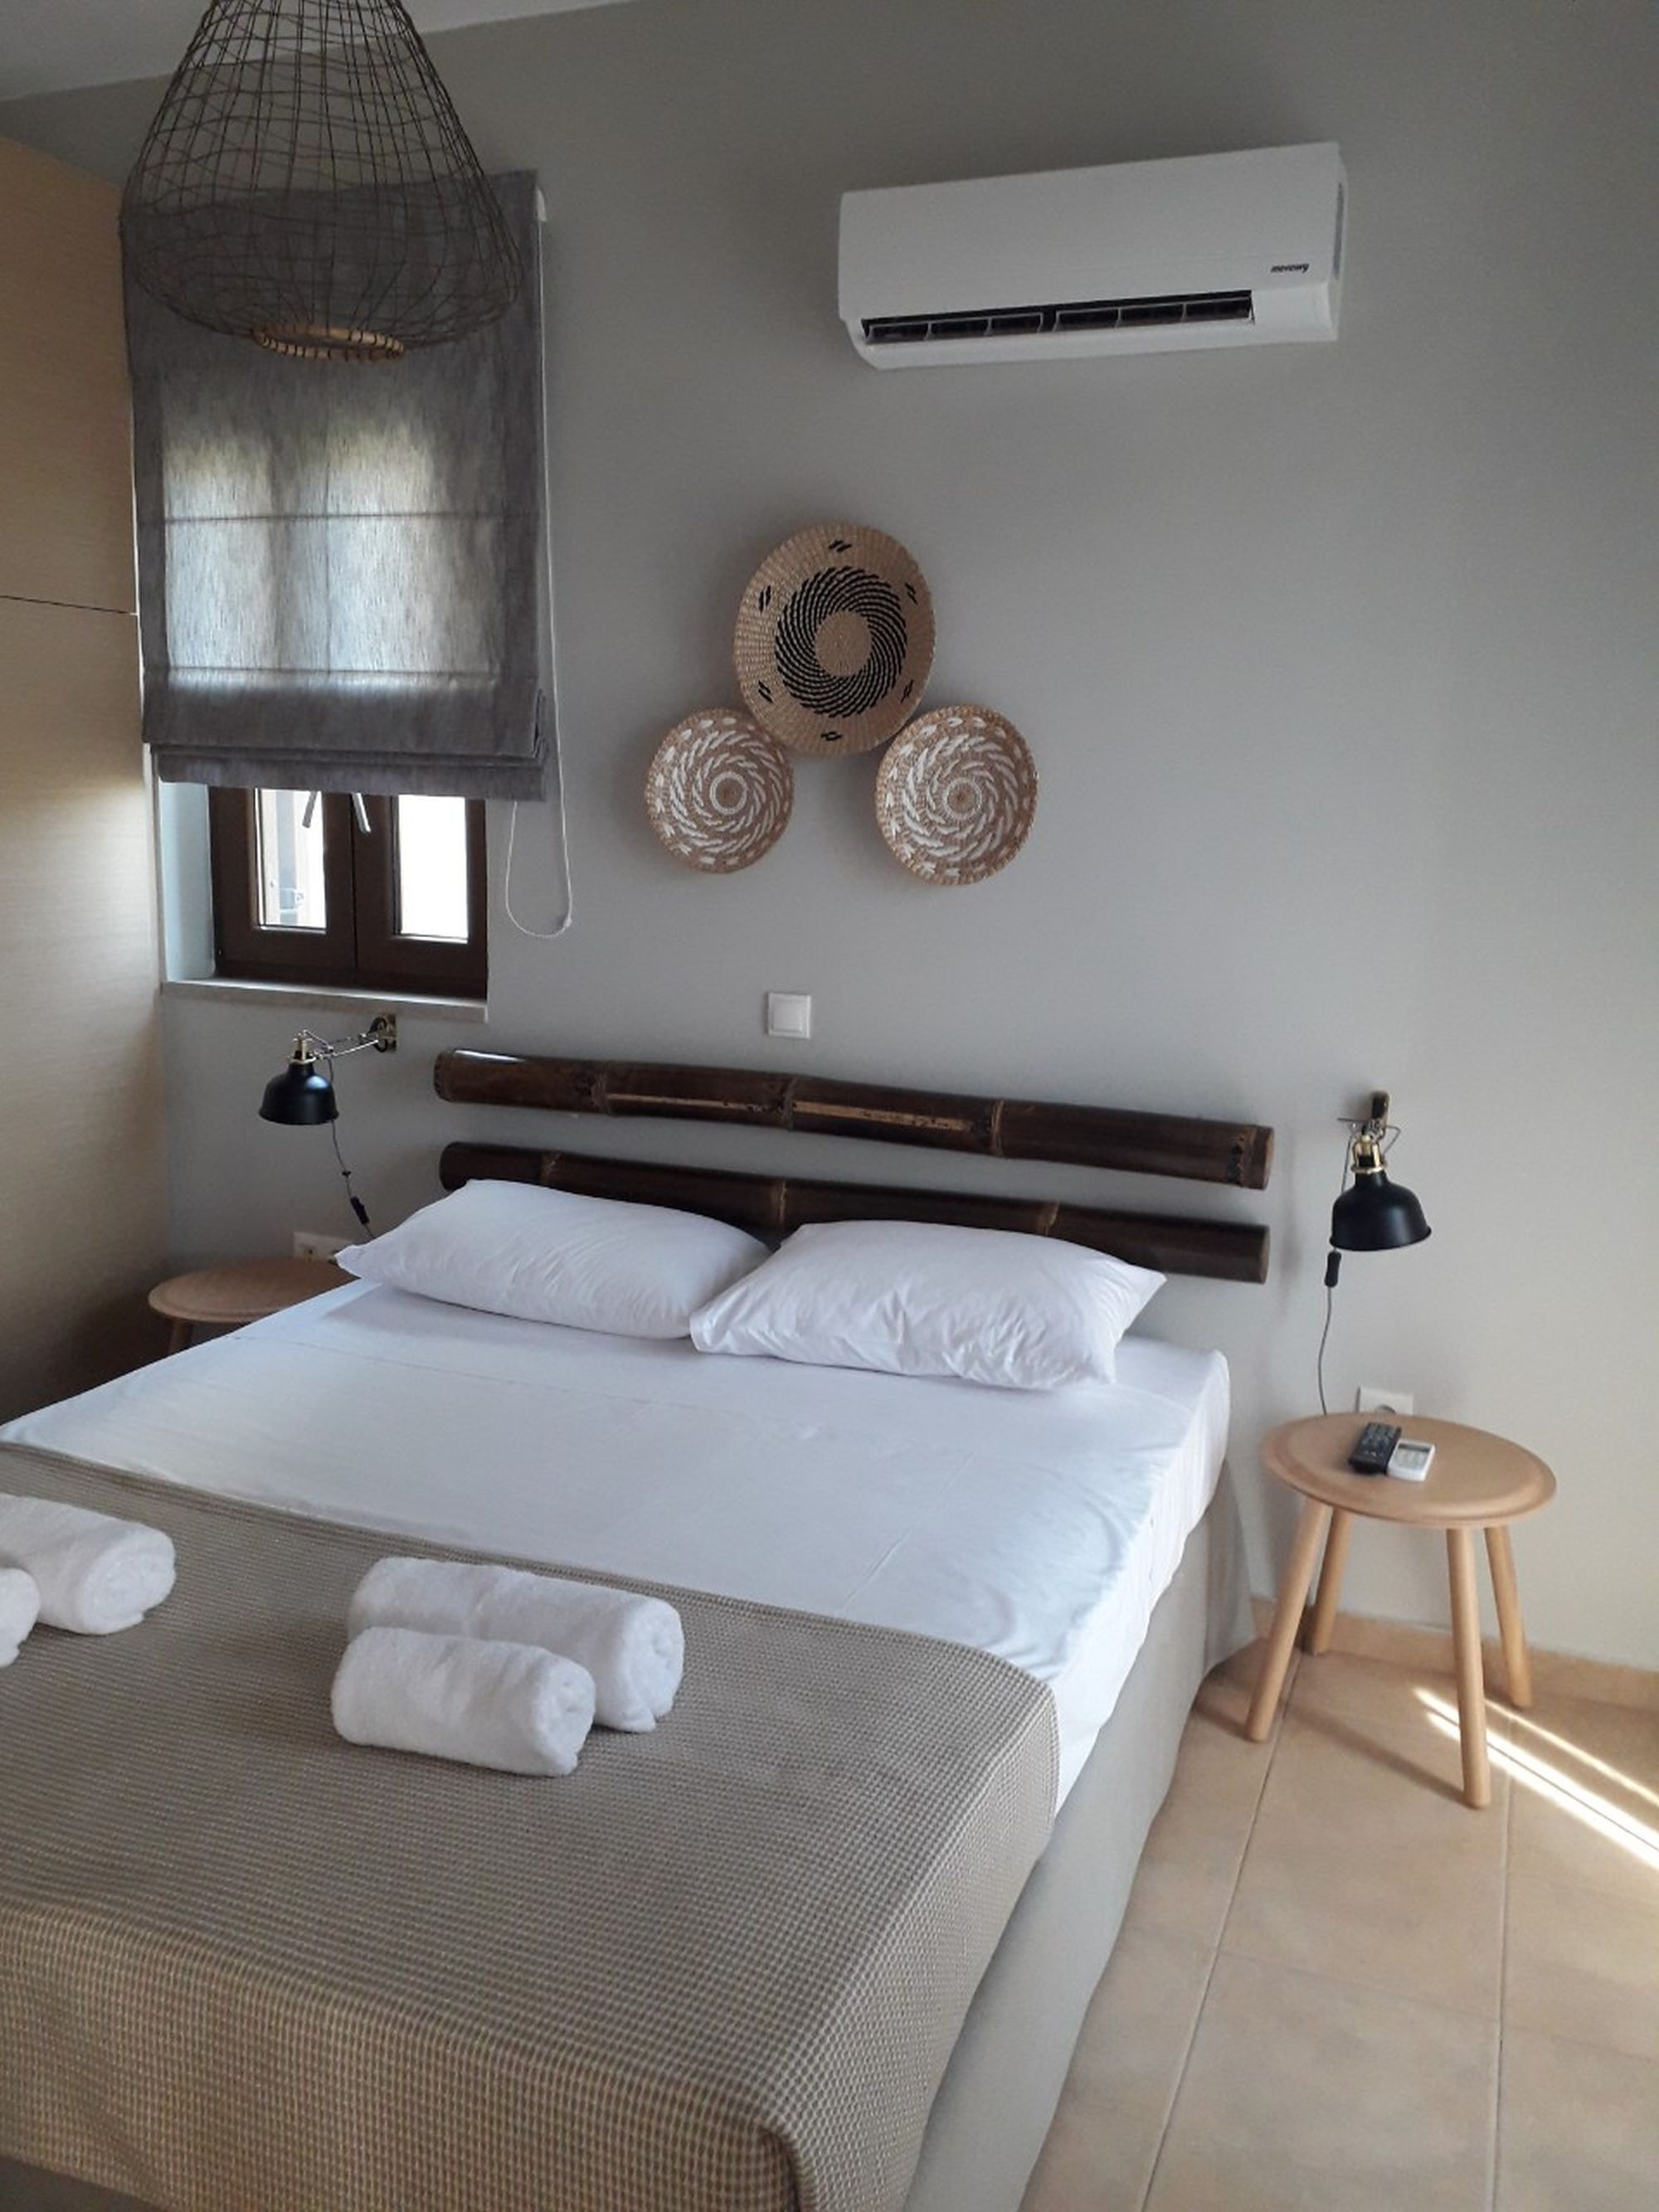 An air-conditioned bedroom with a double bed decorated with bamboo masts over the bed and three wicker round deco elements on the wall.